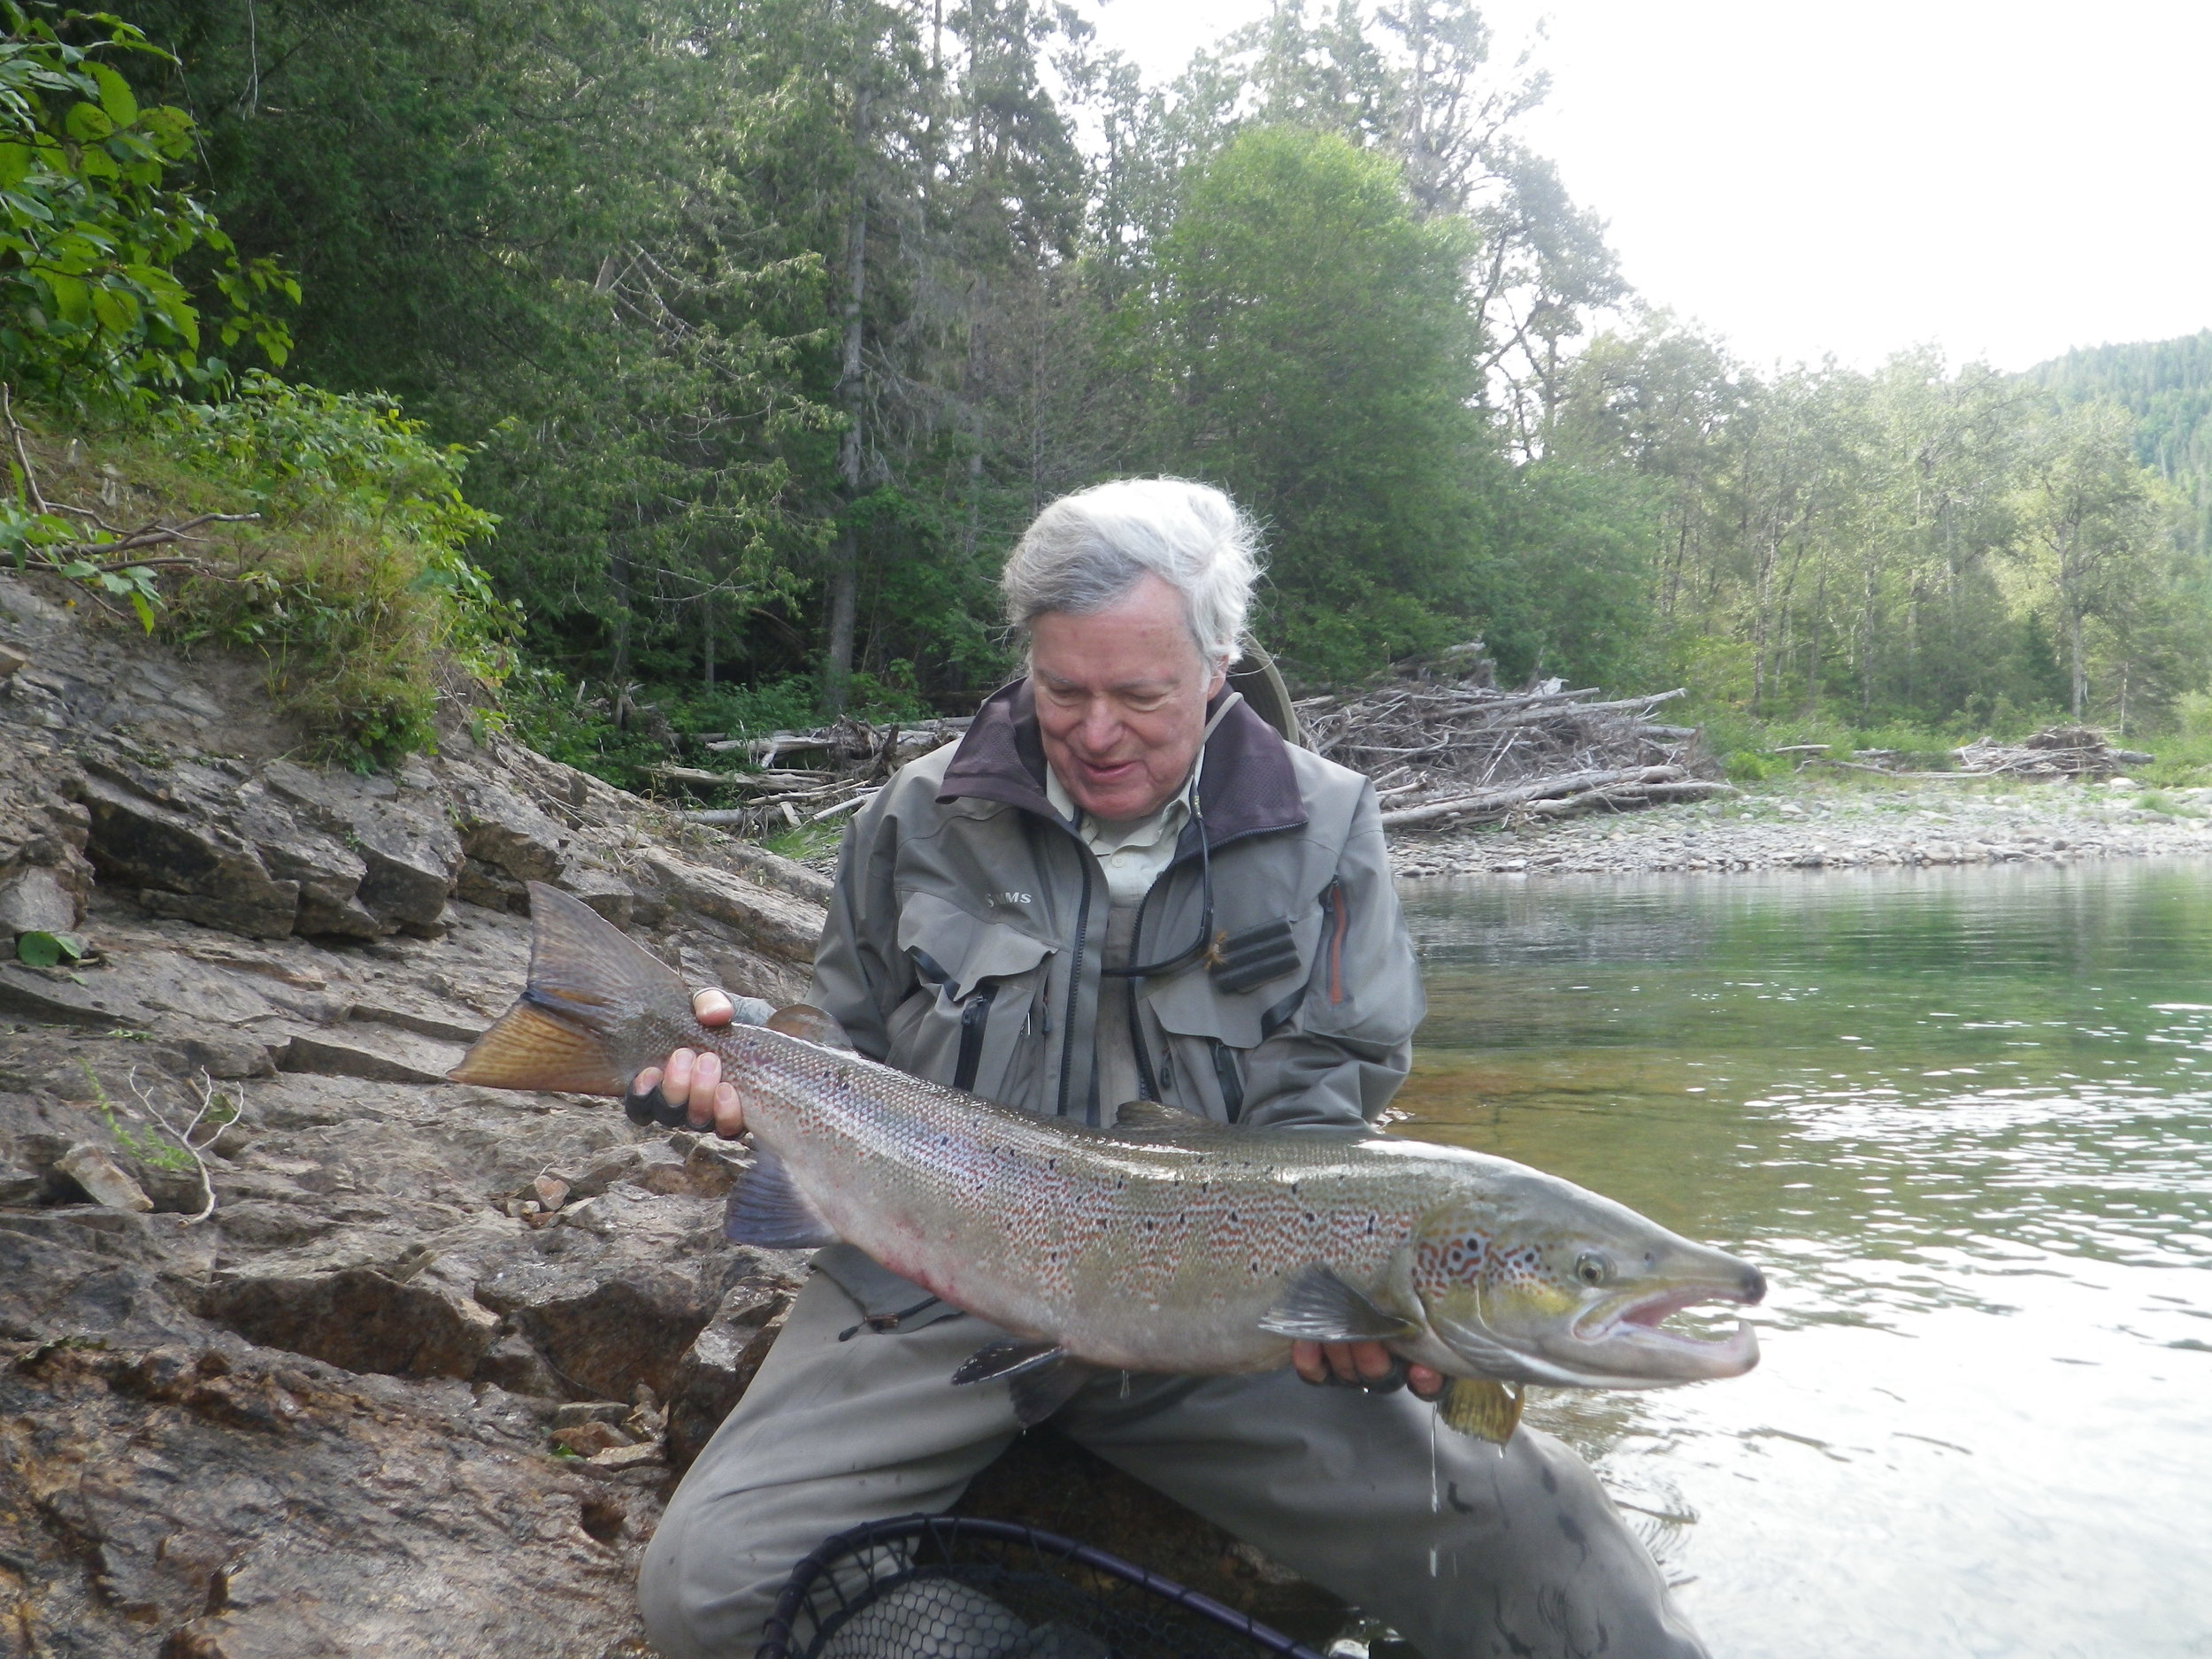 Wright Palmer has been a delightful guest of ours for many years - both at Camp Bonaventure and Salmon Lodge. Here he is admiring his great catch before releasing it back into the Bonaventure River!